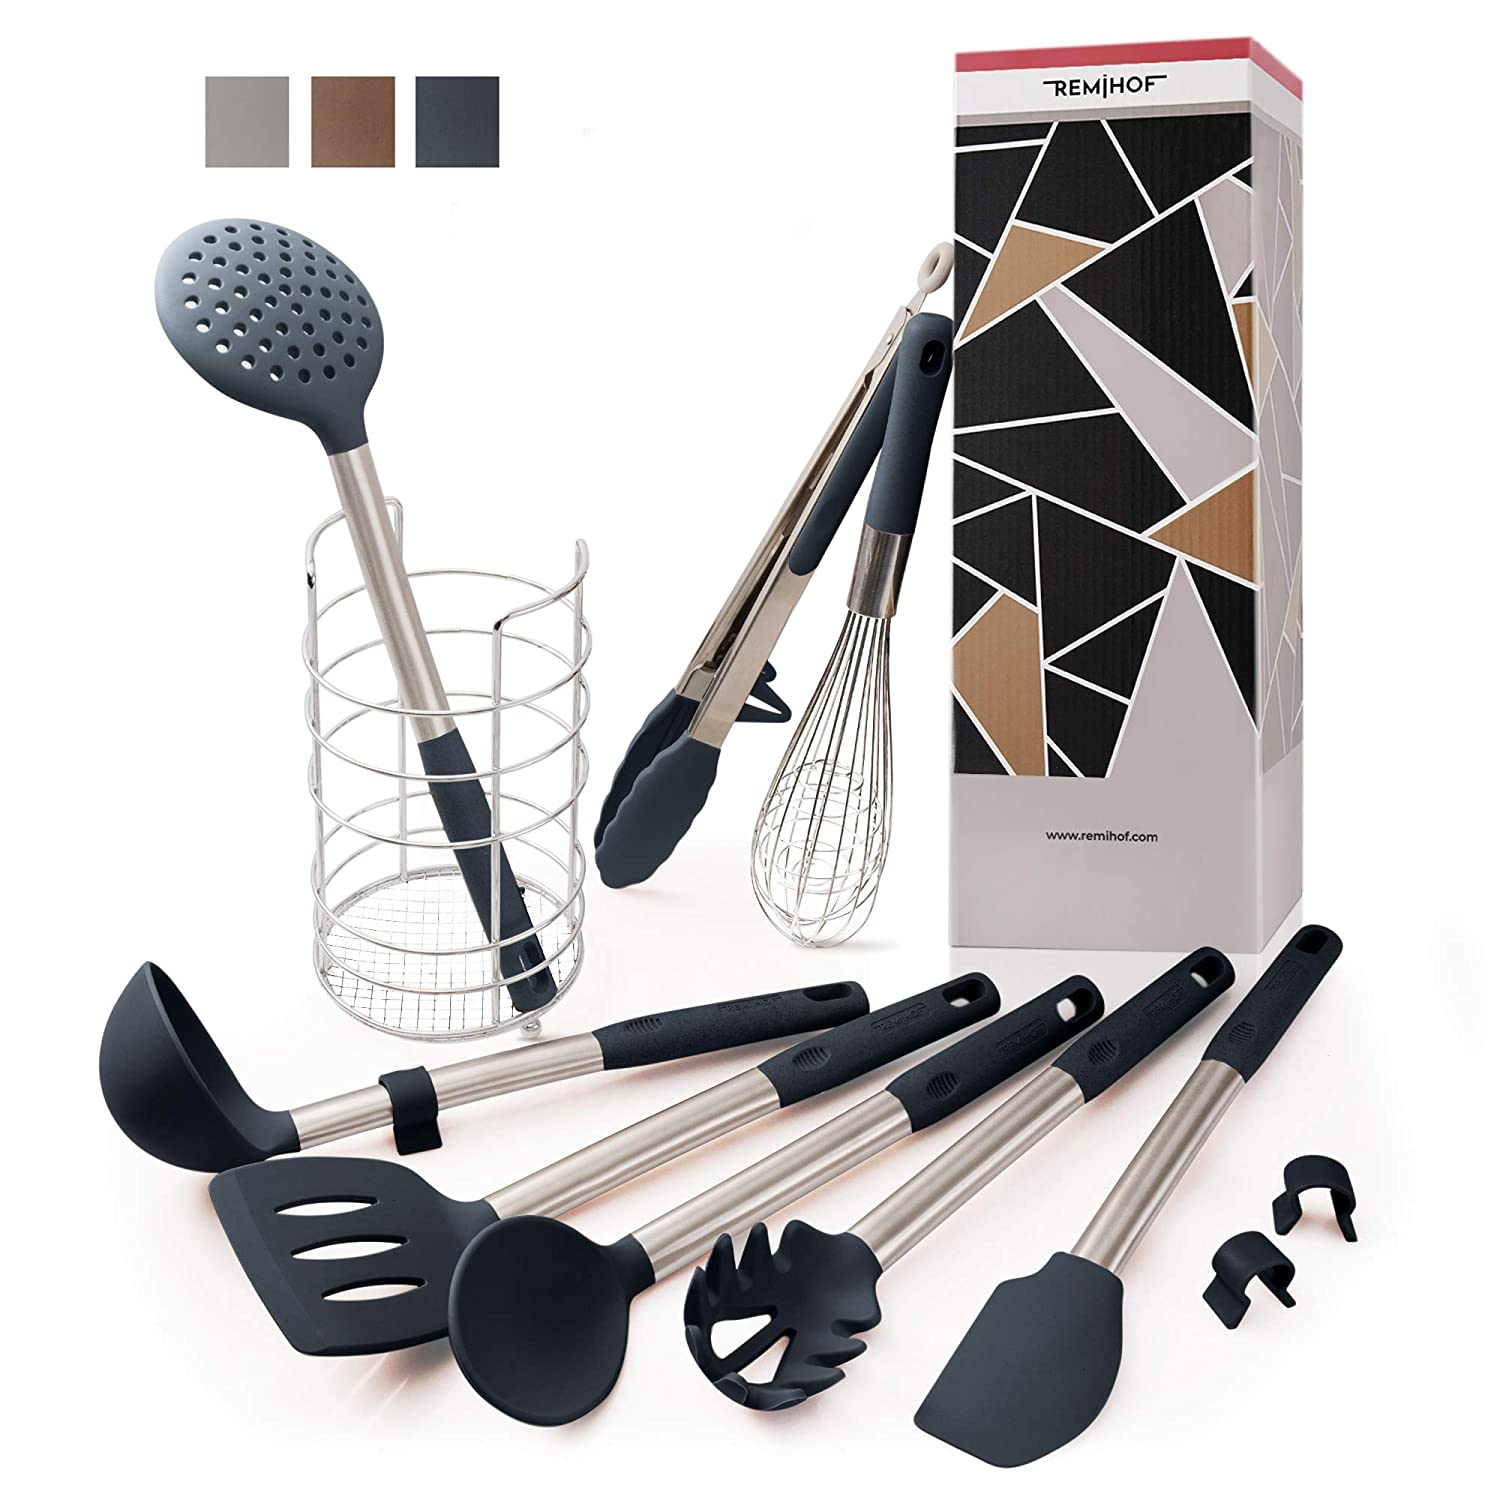 REMIHOF Silicone Kitchen Utensil Set - Nonstick Silicone and Stainless Steel Cooking Utensils - Spatula Turner Ladle Pasta Server - Best Culinary Gift Set (9pcs, DarkGrey)